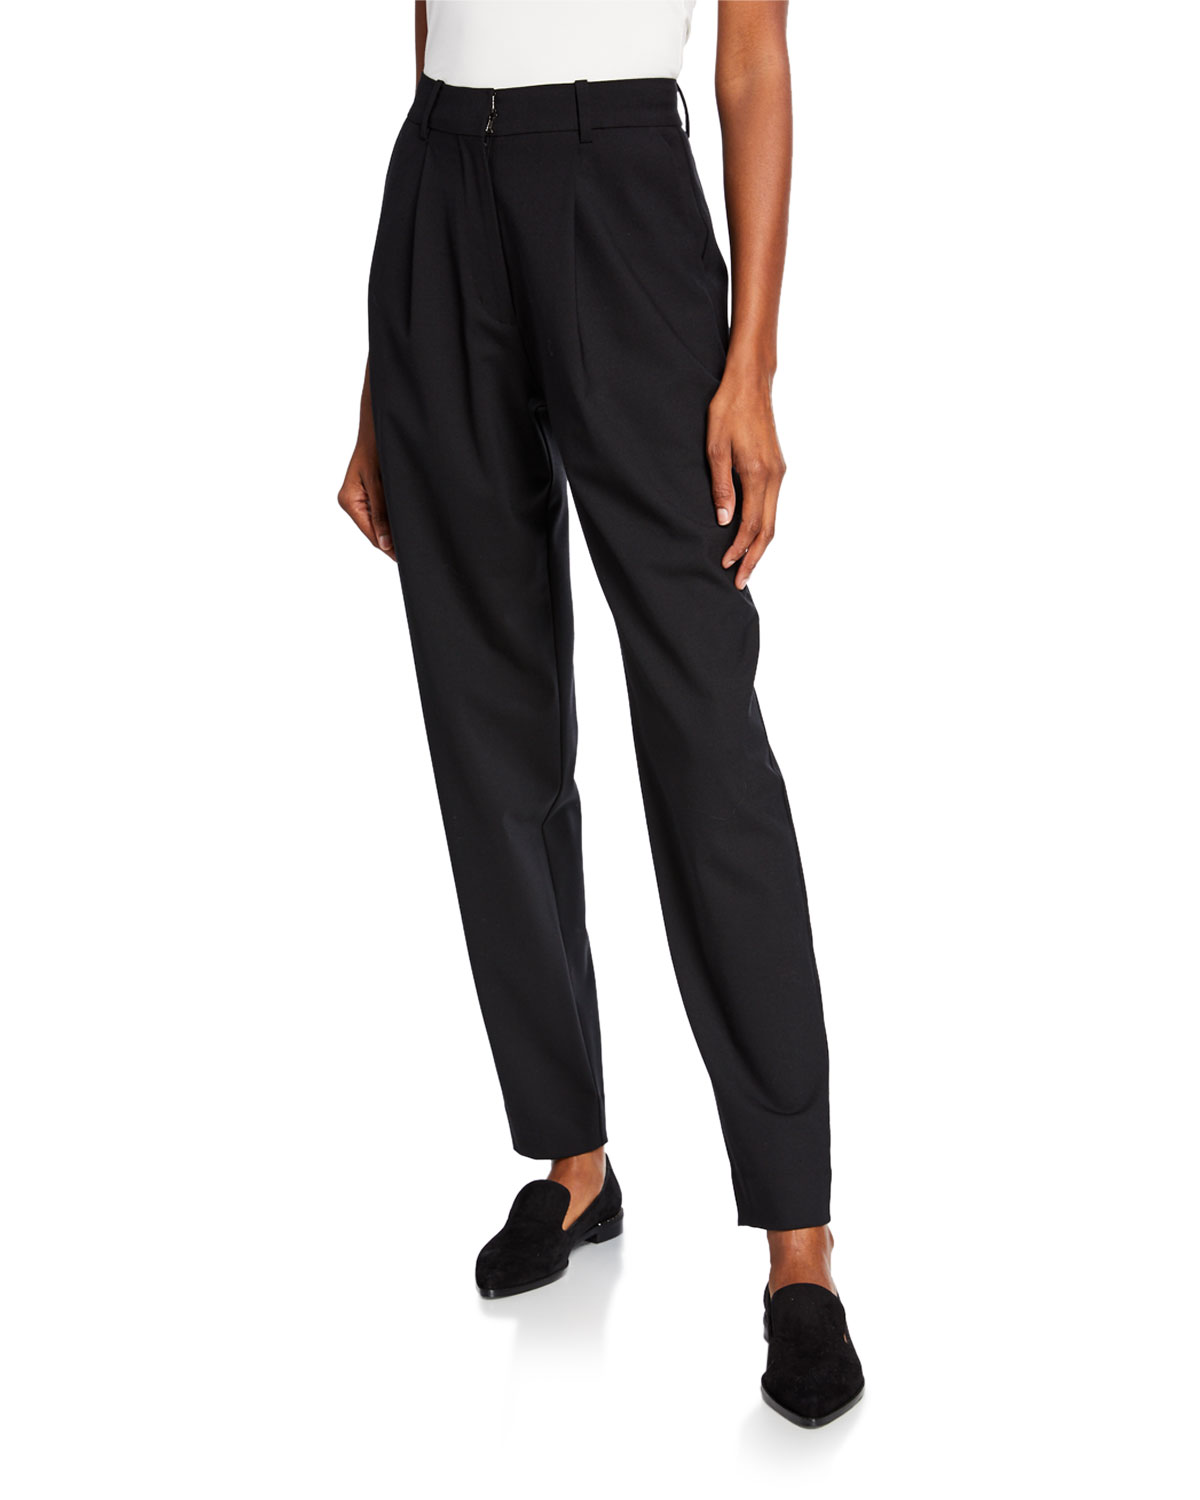 Co Pants PLEATED HIGH-RISE TROUSERS